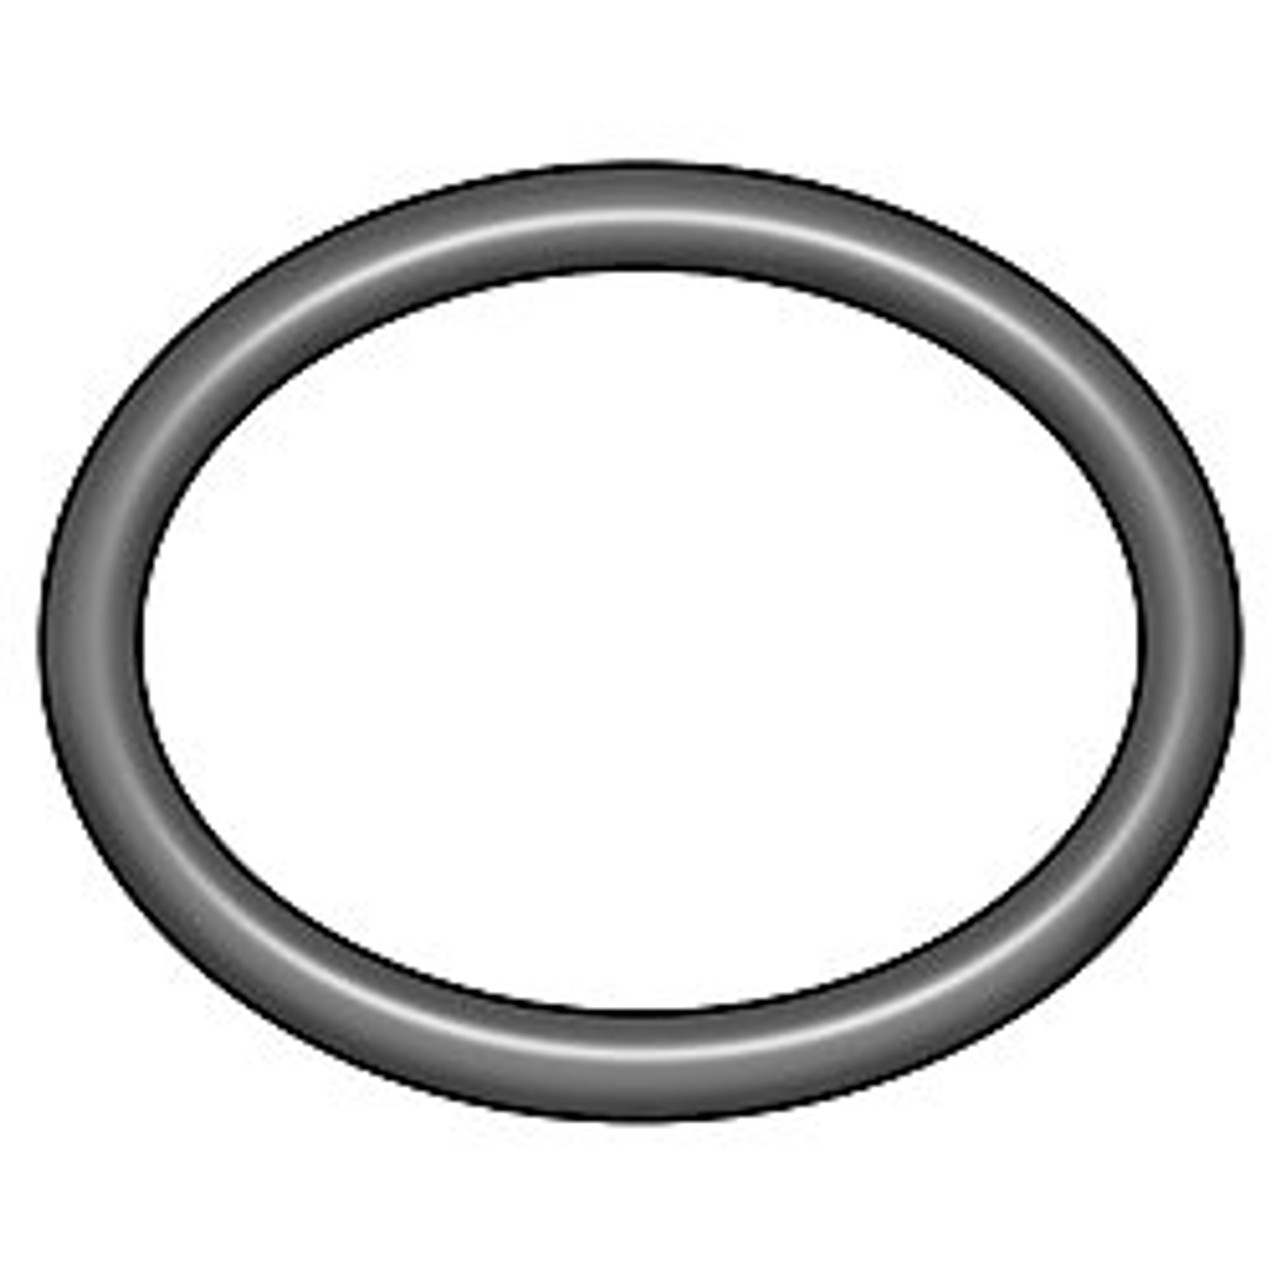 "o ring seal- gasket for 8"" hatch"